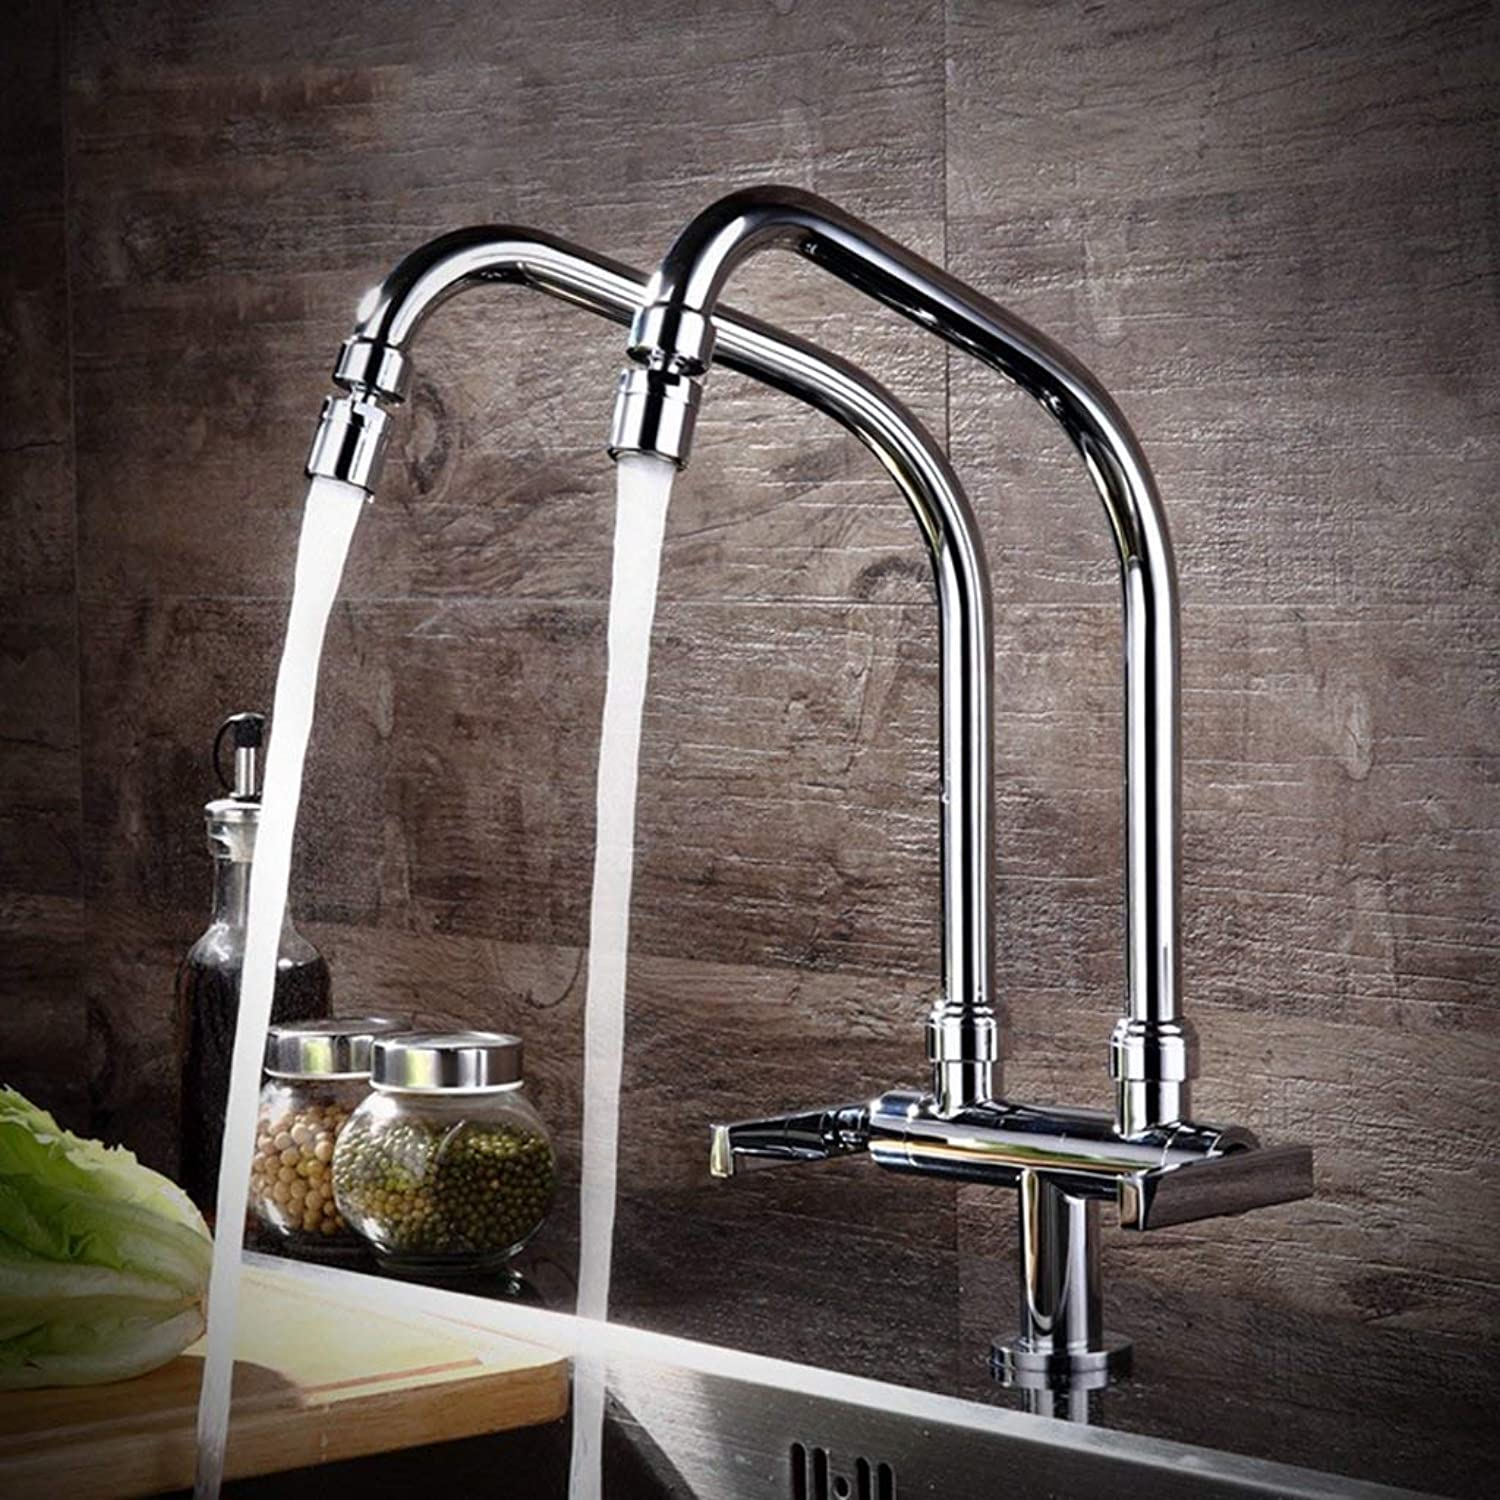 BMY Kitchen Sink Taps Modern Minimalist Pure Copper Kitchen Faucet Single Cold Type Universal Faucet Double Pipe Faucet Wash Basin Sink Can Be redated Faucet (Size   A)